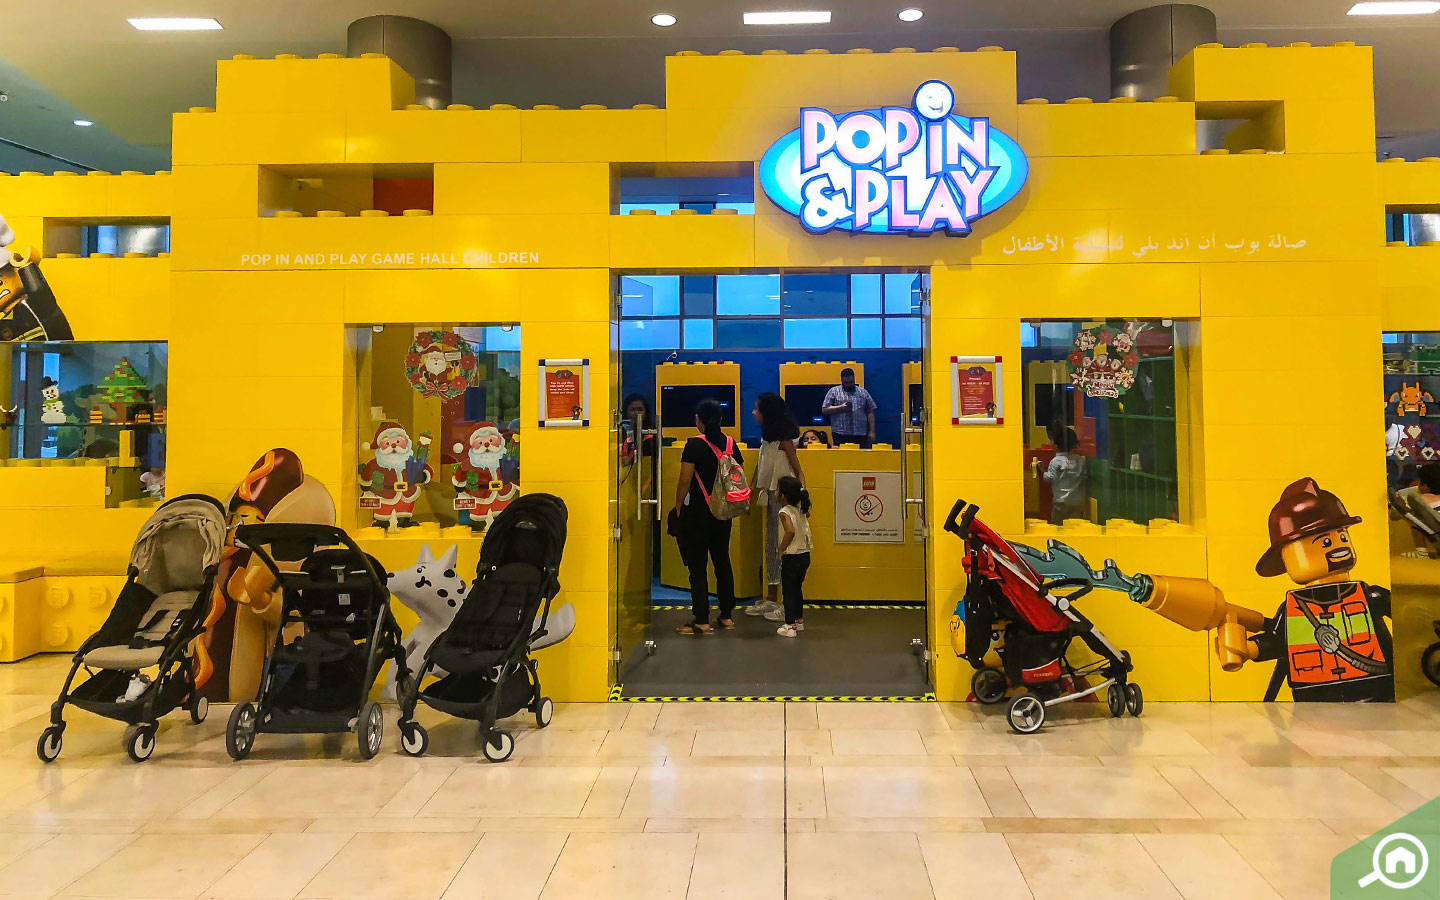 LEGGO POP IN AND PLAY IN YAS MALL